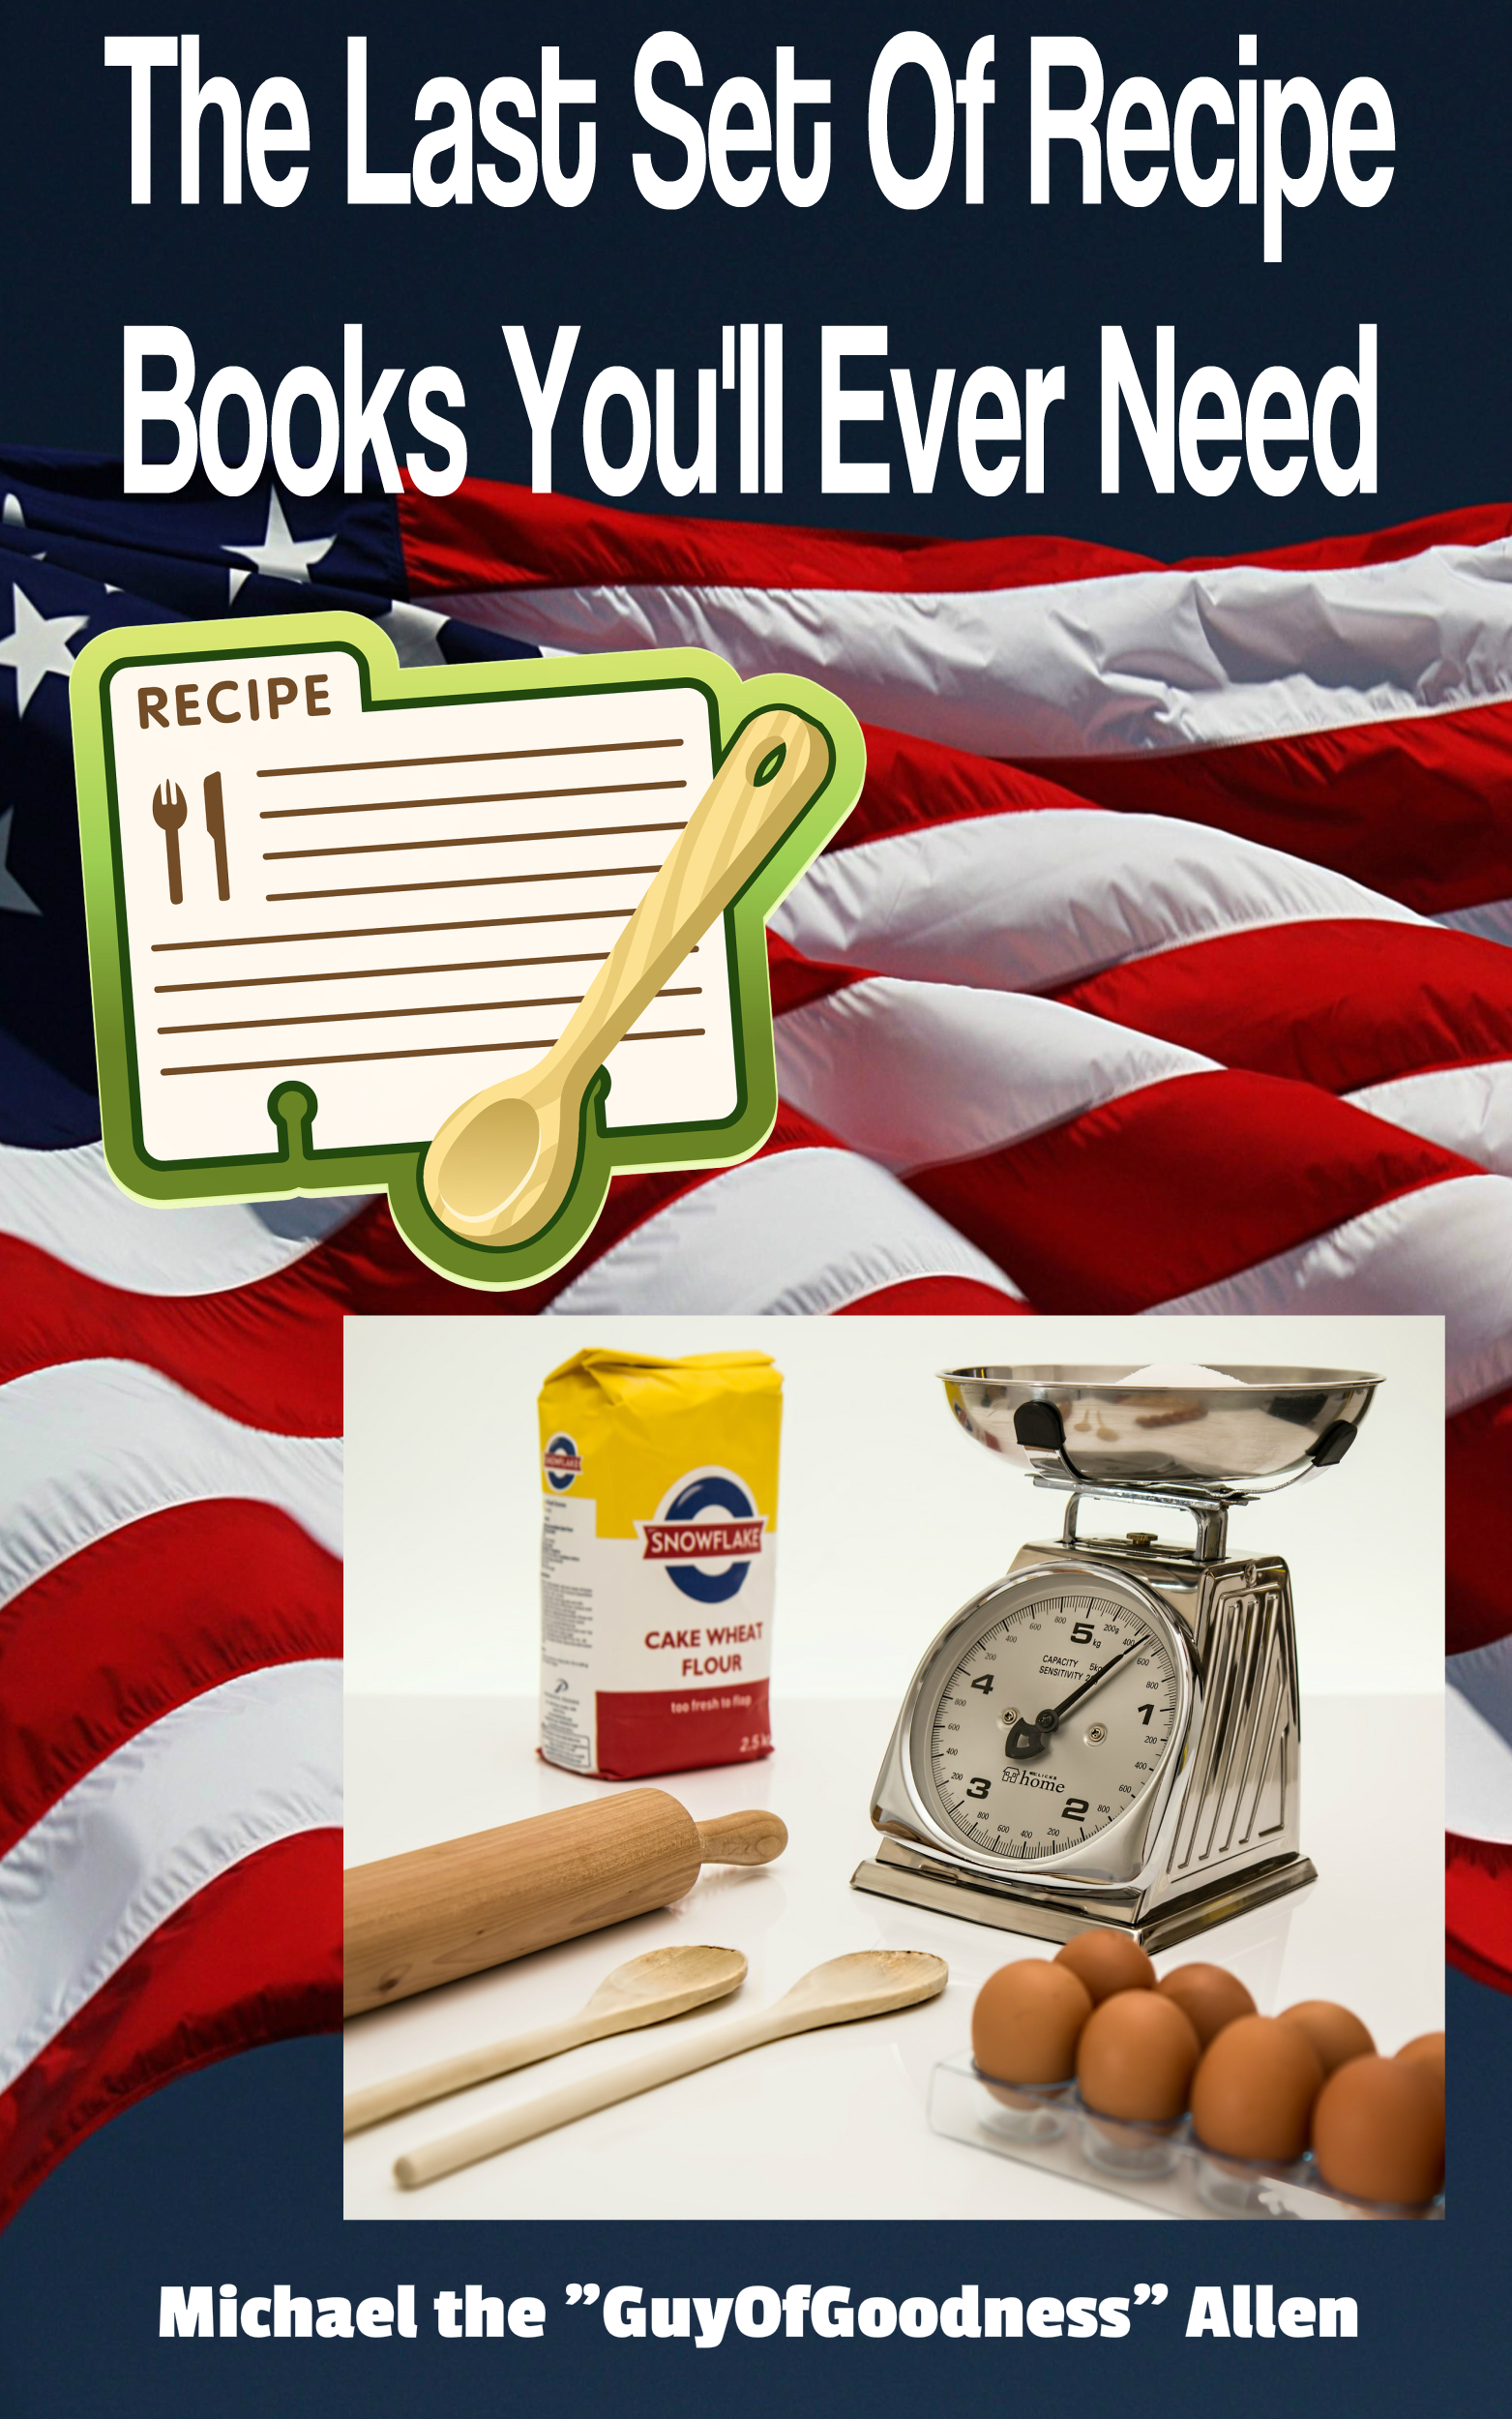 The Last Set Of Recipe Books You'll Ever Need! [Online Code]